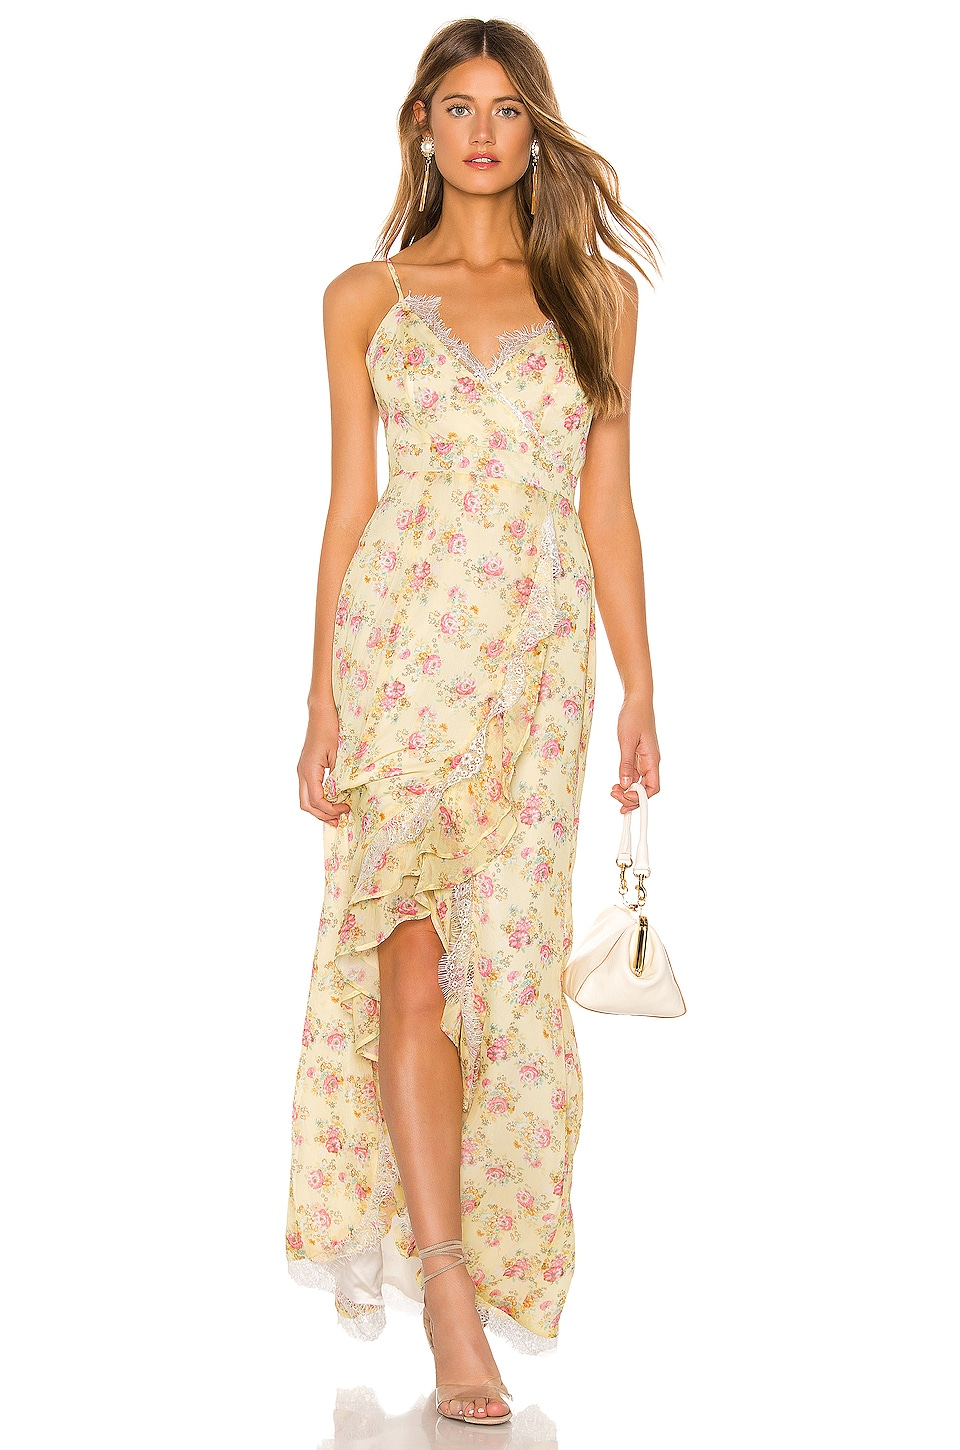 MAJORELLE Paisley Dress in Yellow Prairie